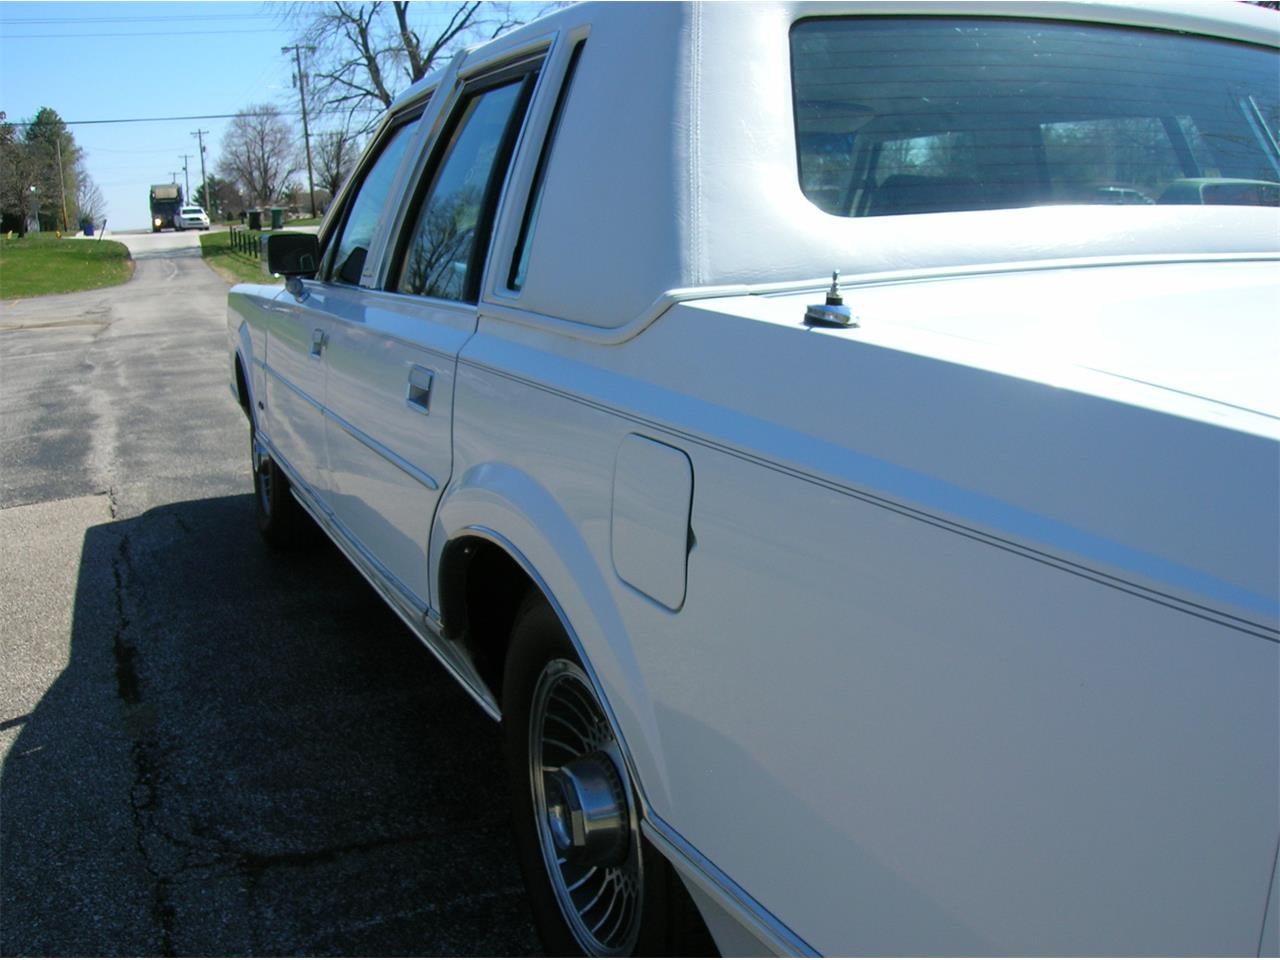 Large Picture of '89 Town Car located in Indiana - $5,845.00 Offered by a Private Seller - N3UE